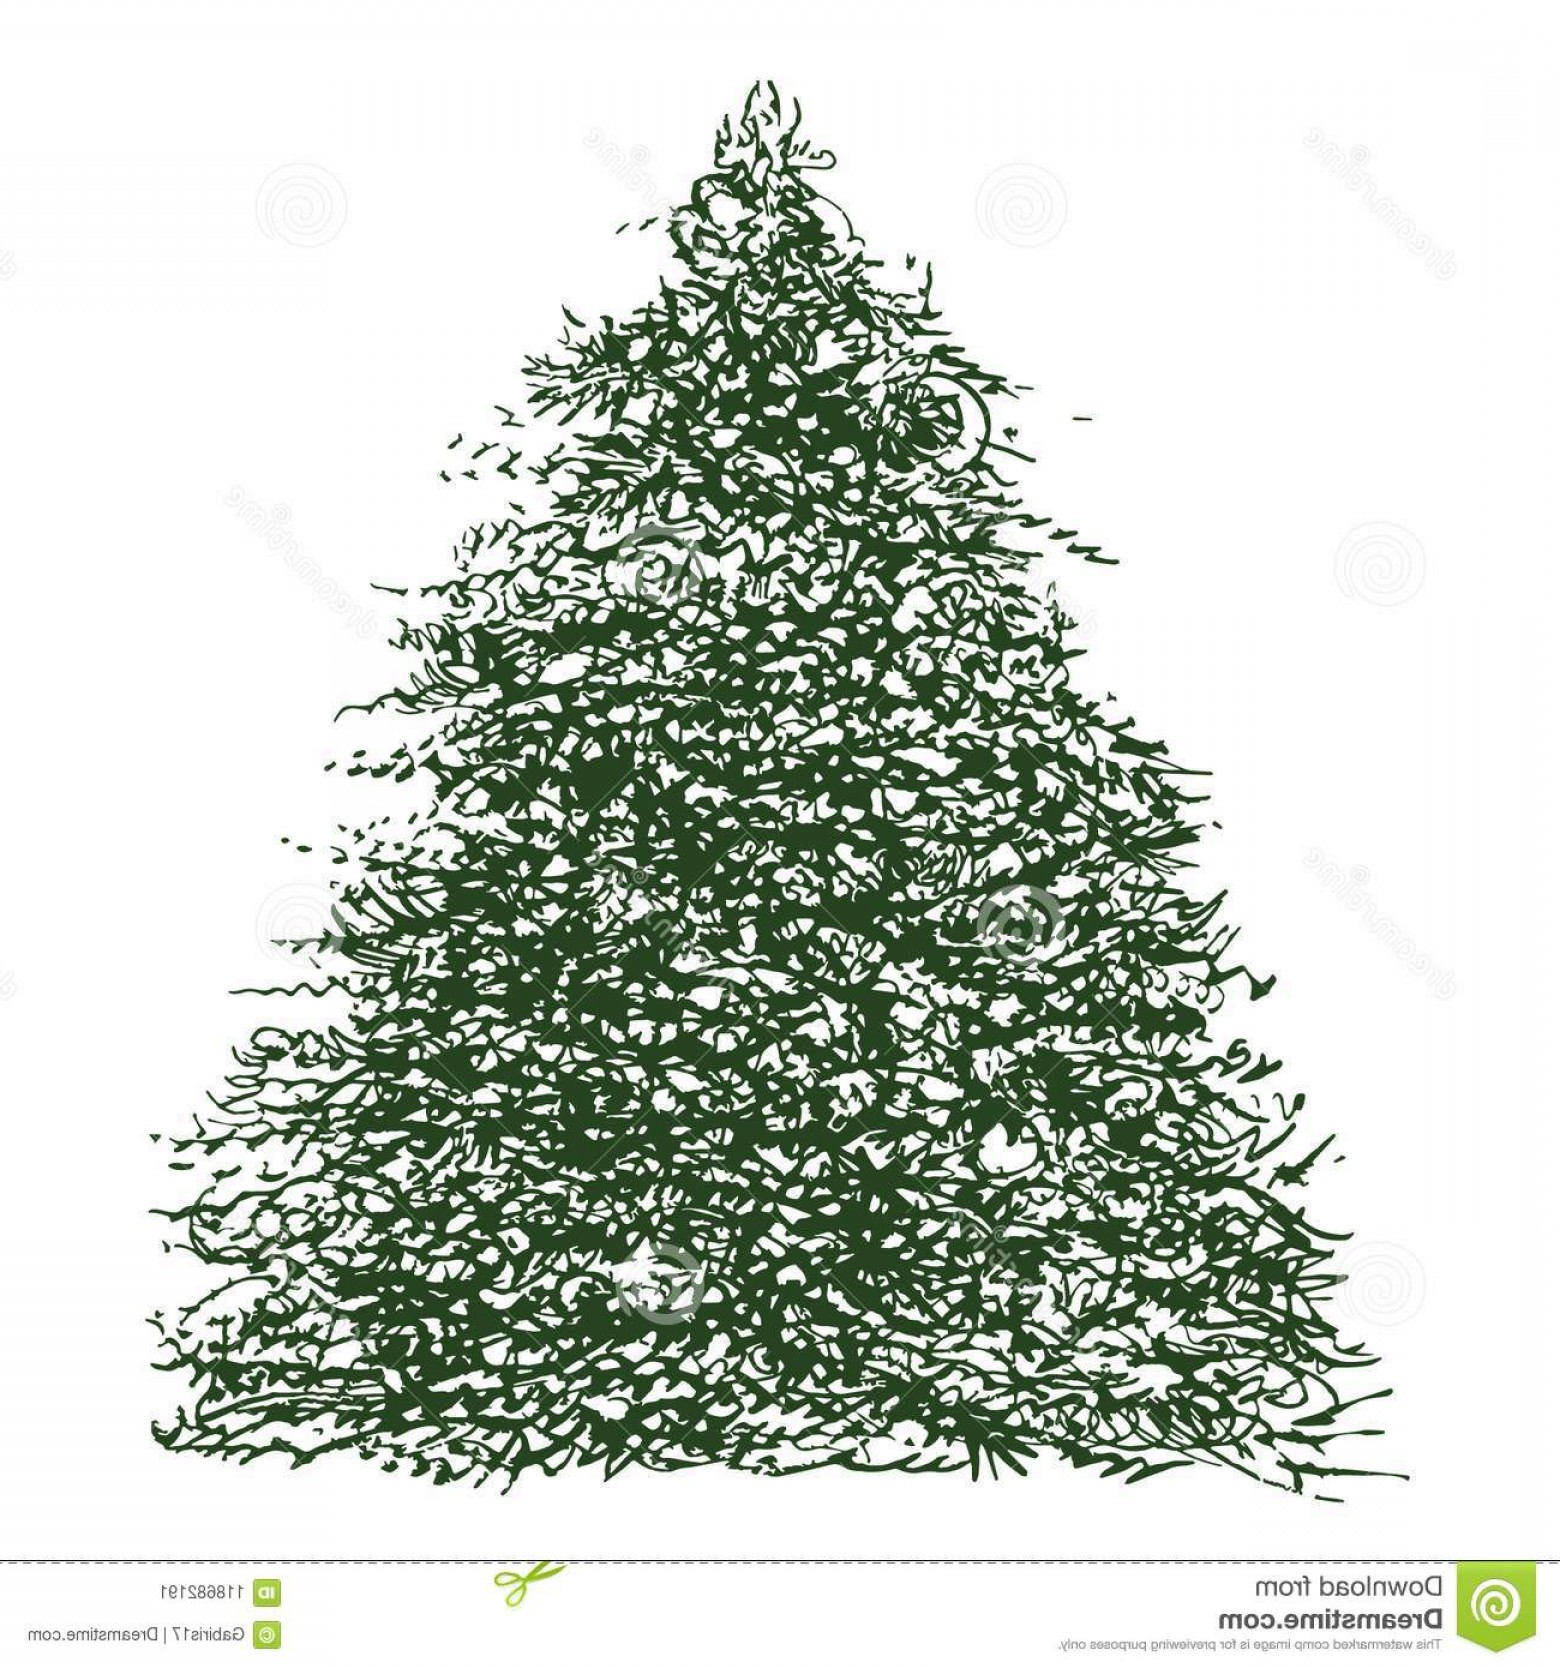 Vector-Based Grayscale Christmas: Freehand Brush Artwork Based Fir Tree Illustration Manually Generated Ink Triangular Remastered Digitally Deep Green Color Image